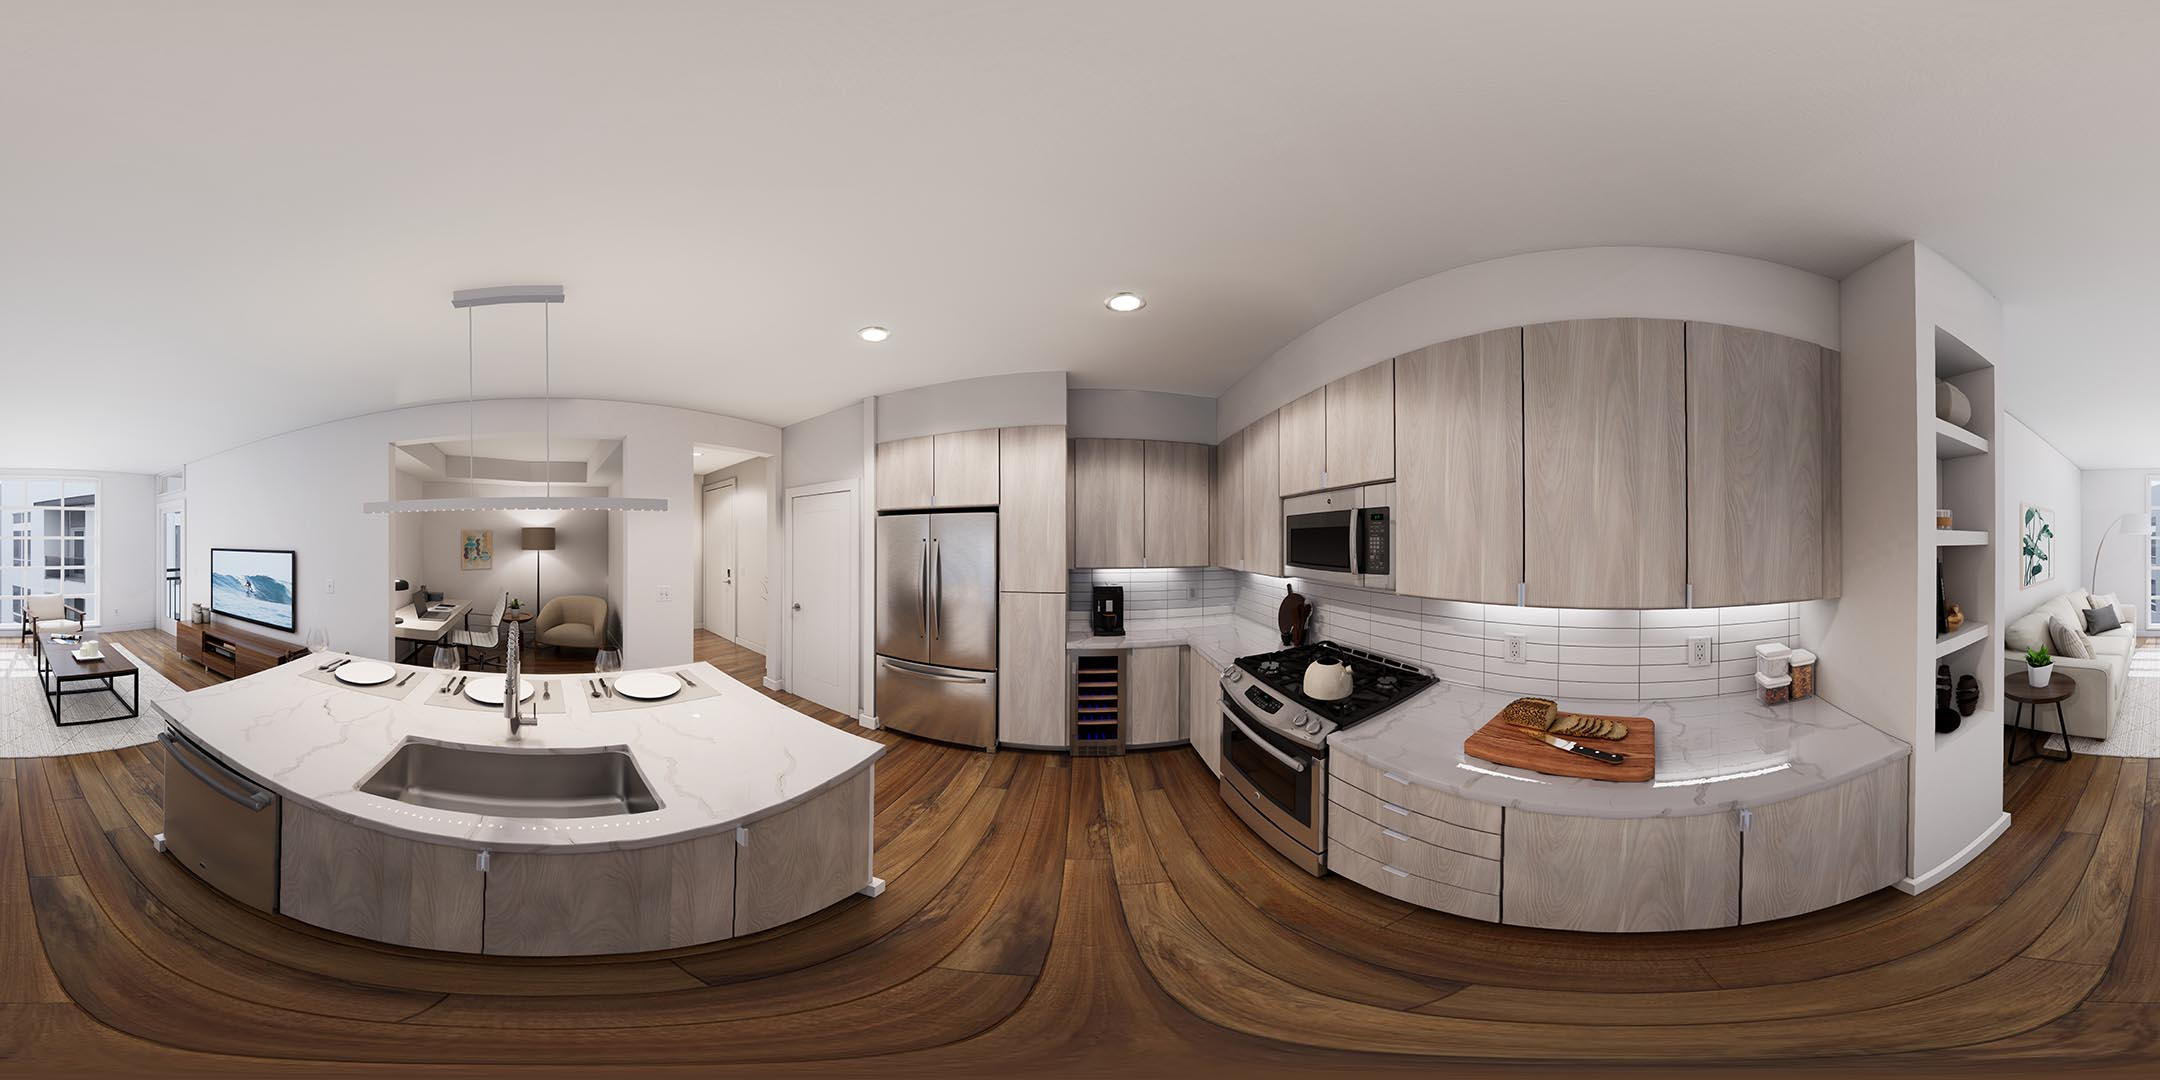 A 360 rendering of an apartment kitchen